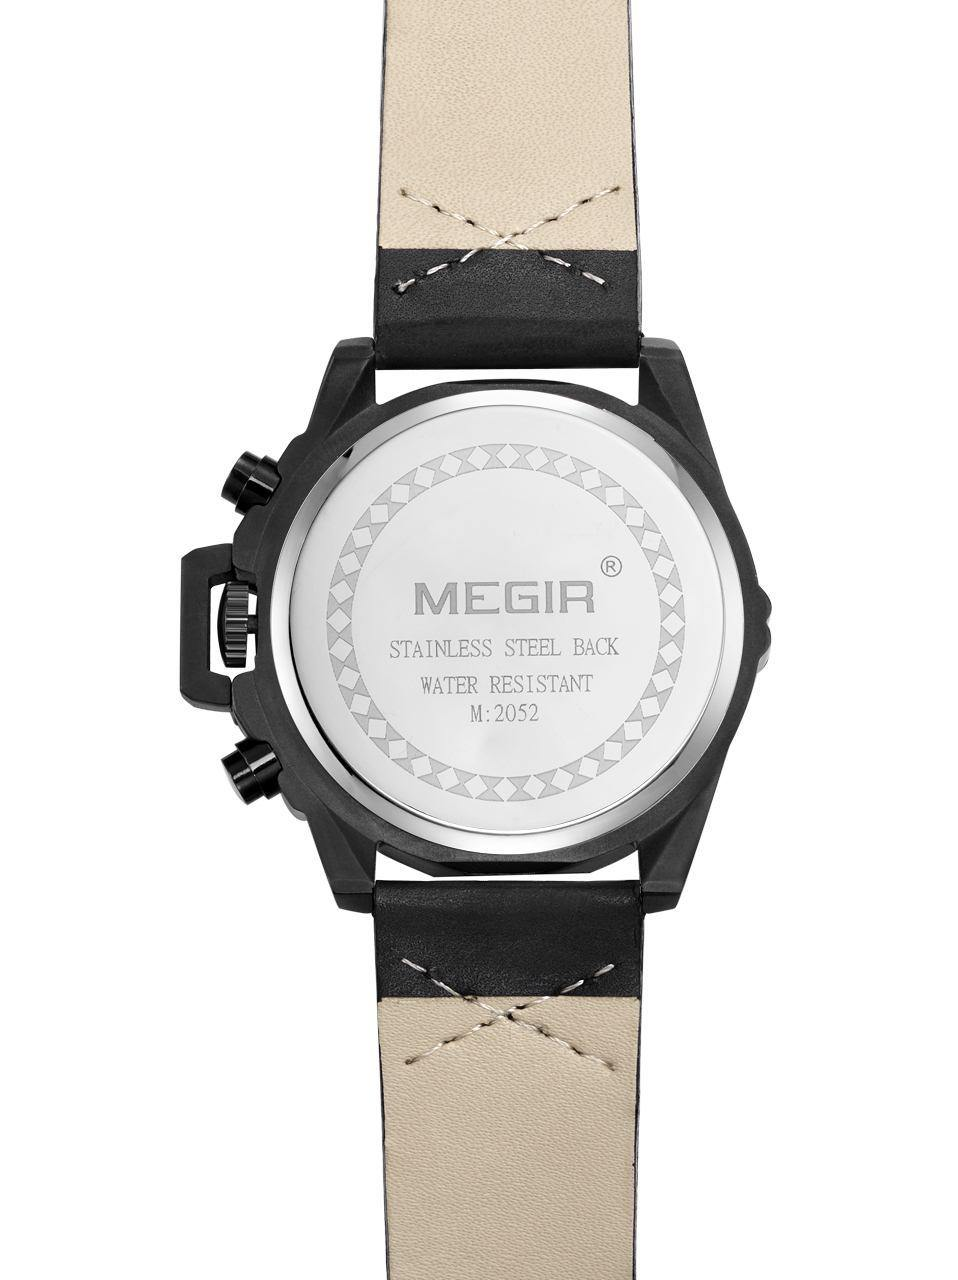 MEGIR luxury brand sports watch, men's wristwatch, military quartz chronograph, Clock men's wristwatch, Men's watch, 2052 - MEGIR